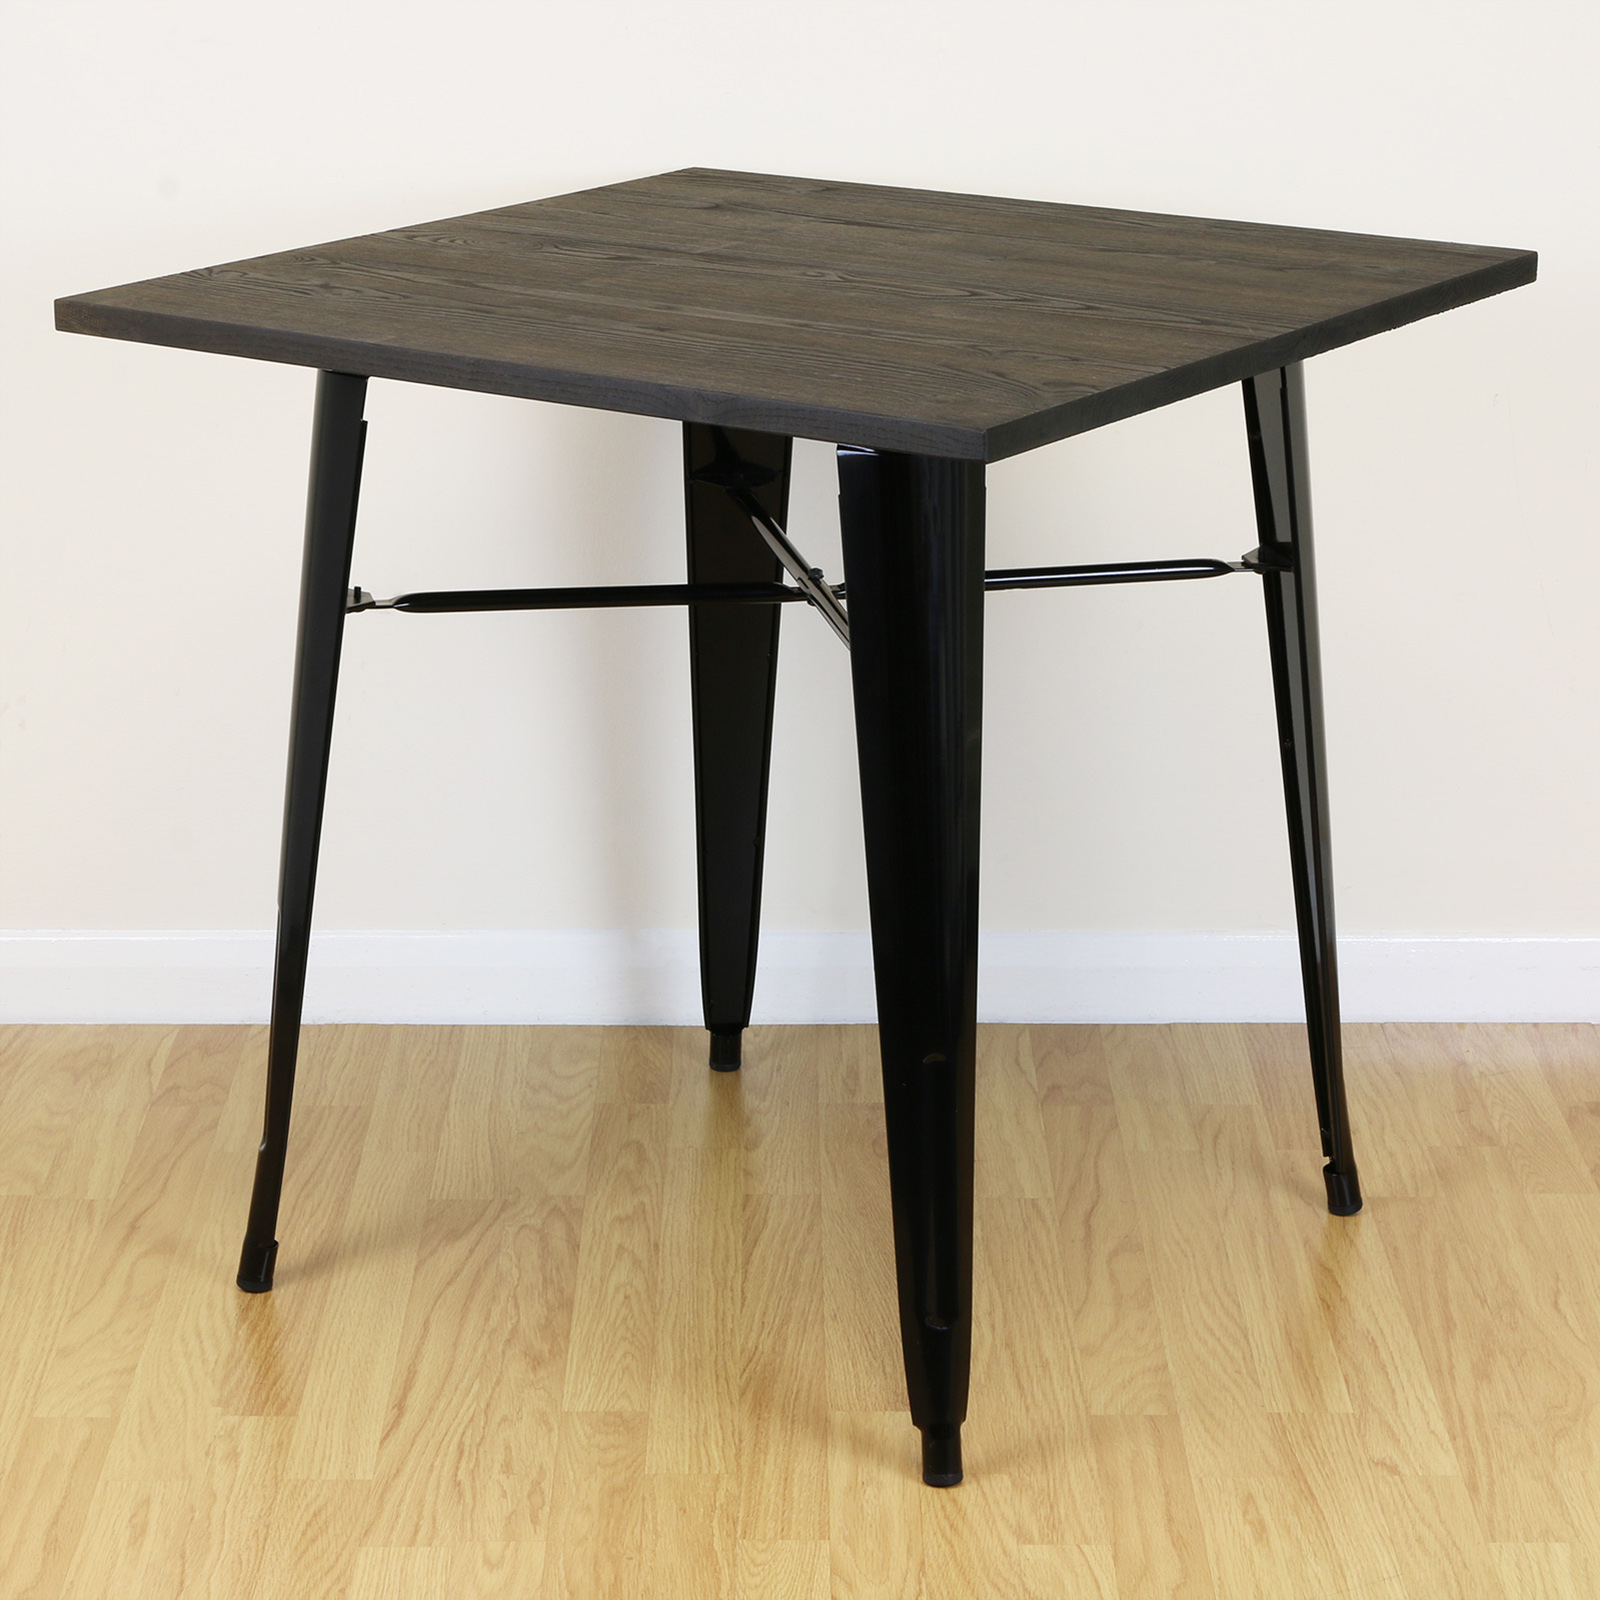 Square wood black kitchen dining cafe home table 2 4 for Square industrial dining table